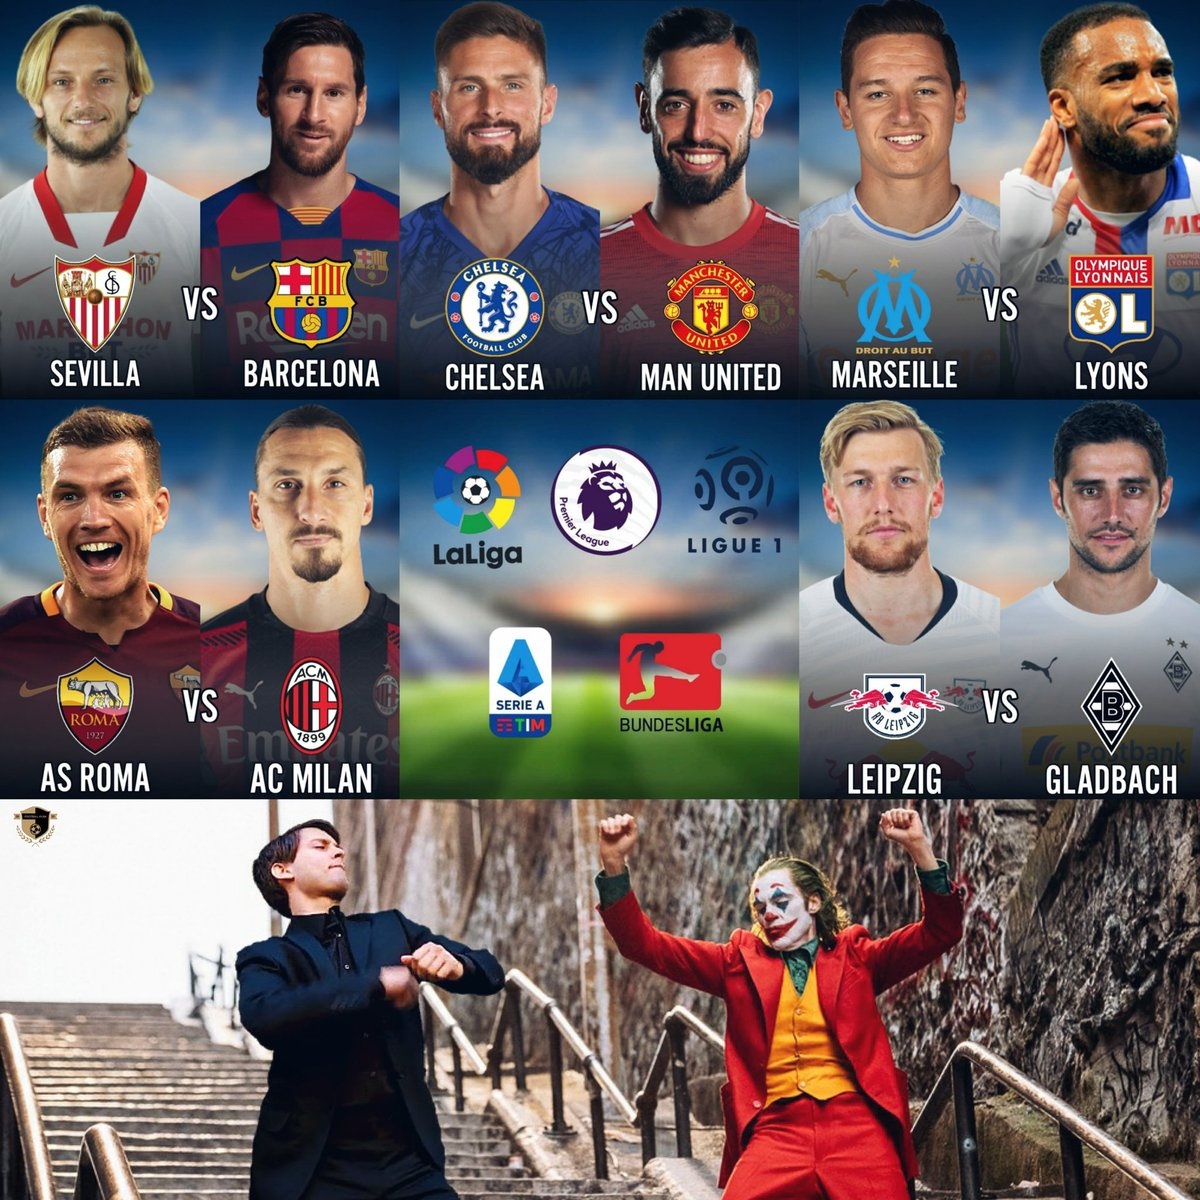 In among all the madness, here are some eye-catching fixtures taking place this weekend. So Football Kura presents some of the fixtures we've picked out five of the best for you to sink your teeth into.😍🔥  #Top5fixtures #premierleauge #Chelsea #manchesterunited #Laliga #sevilla